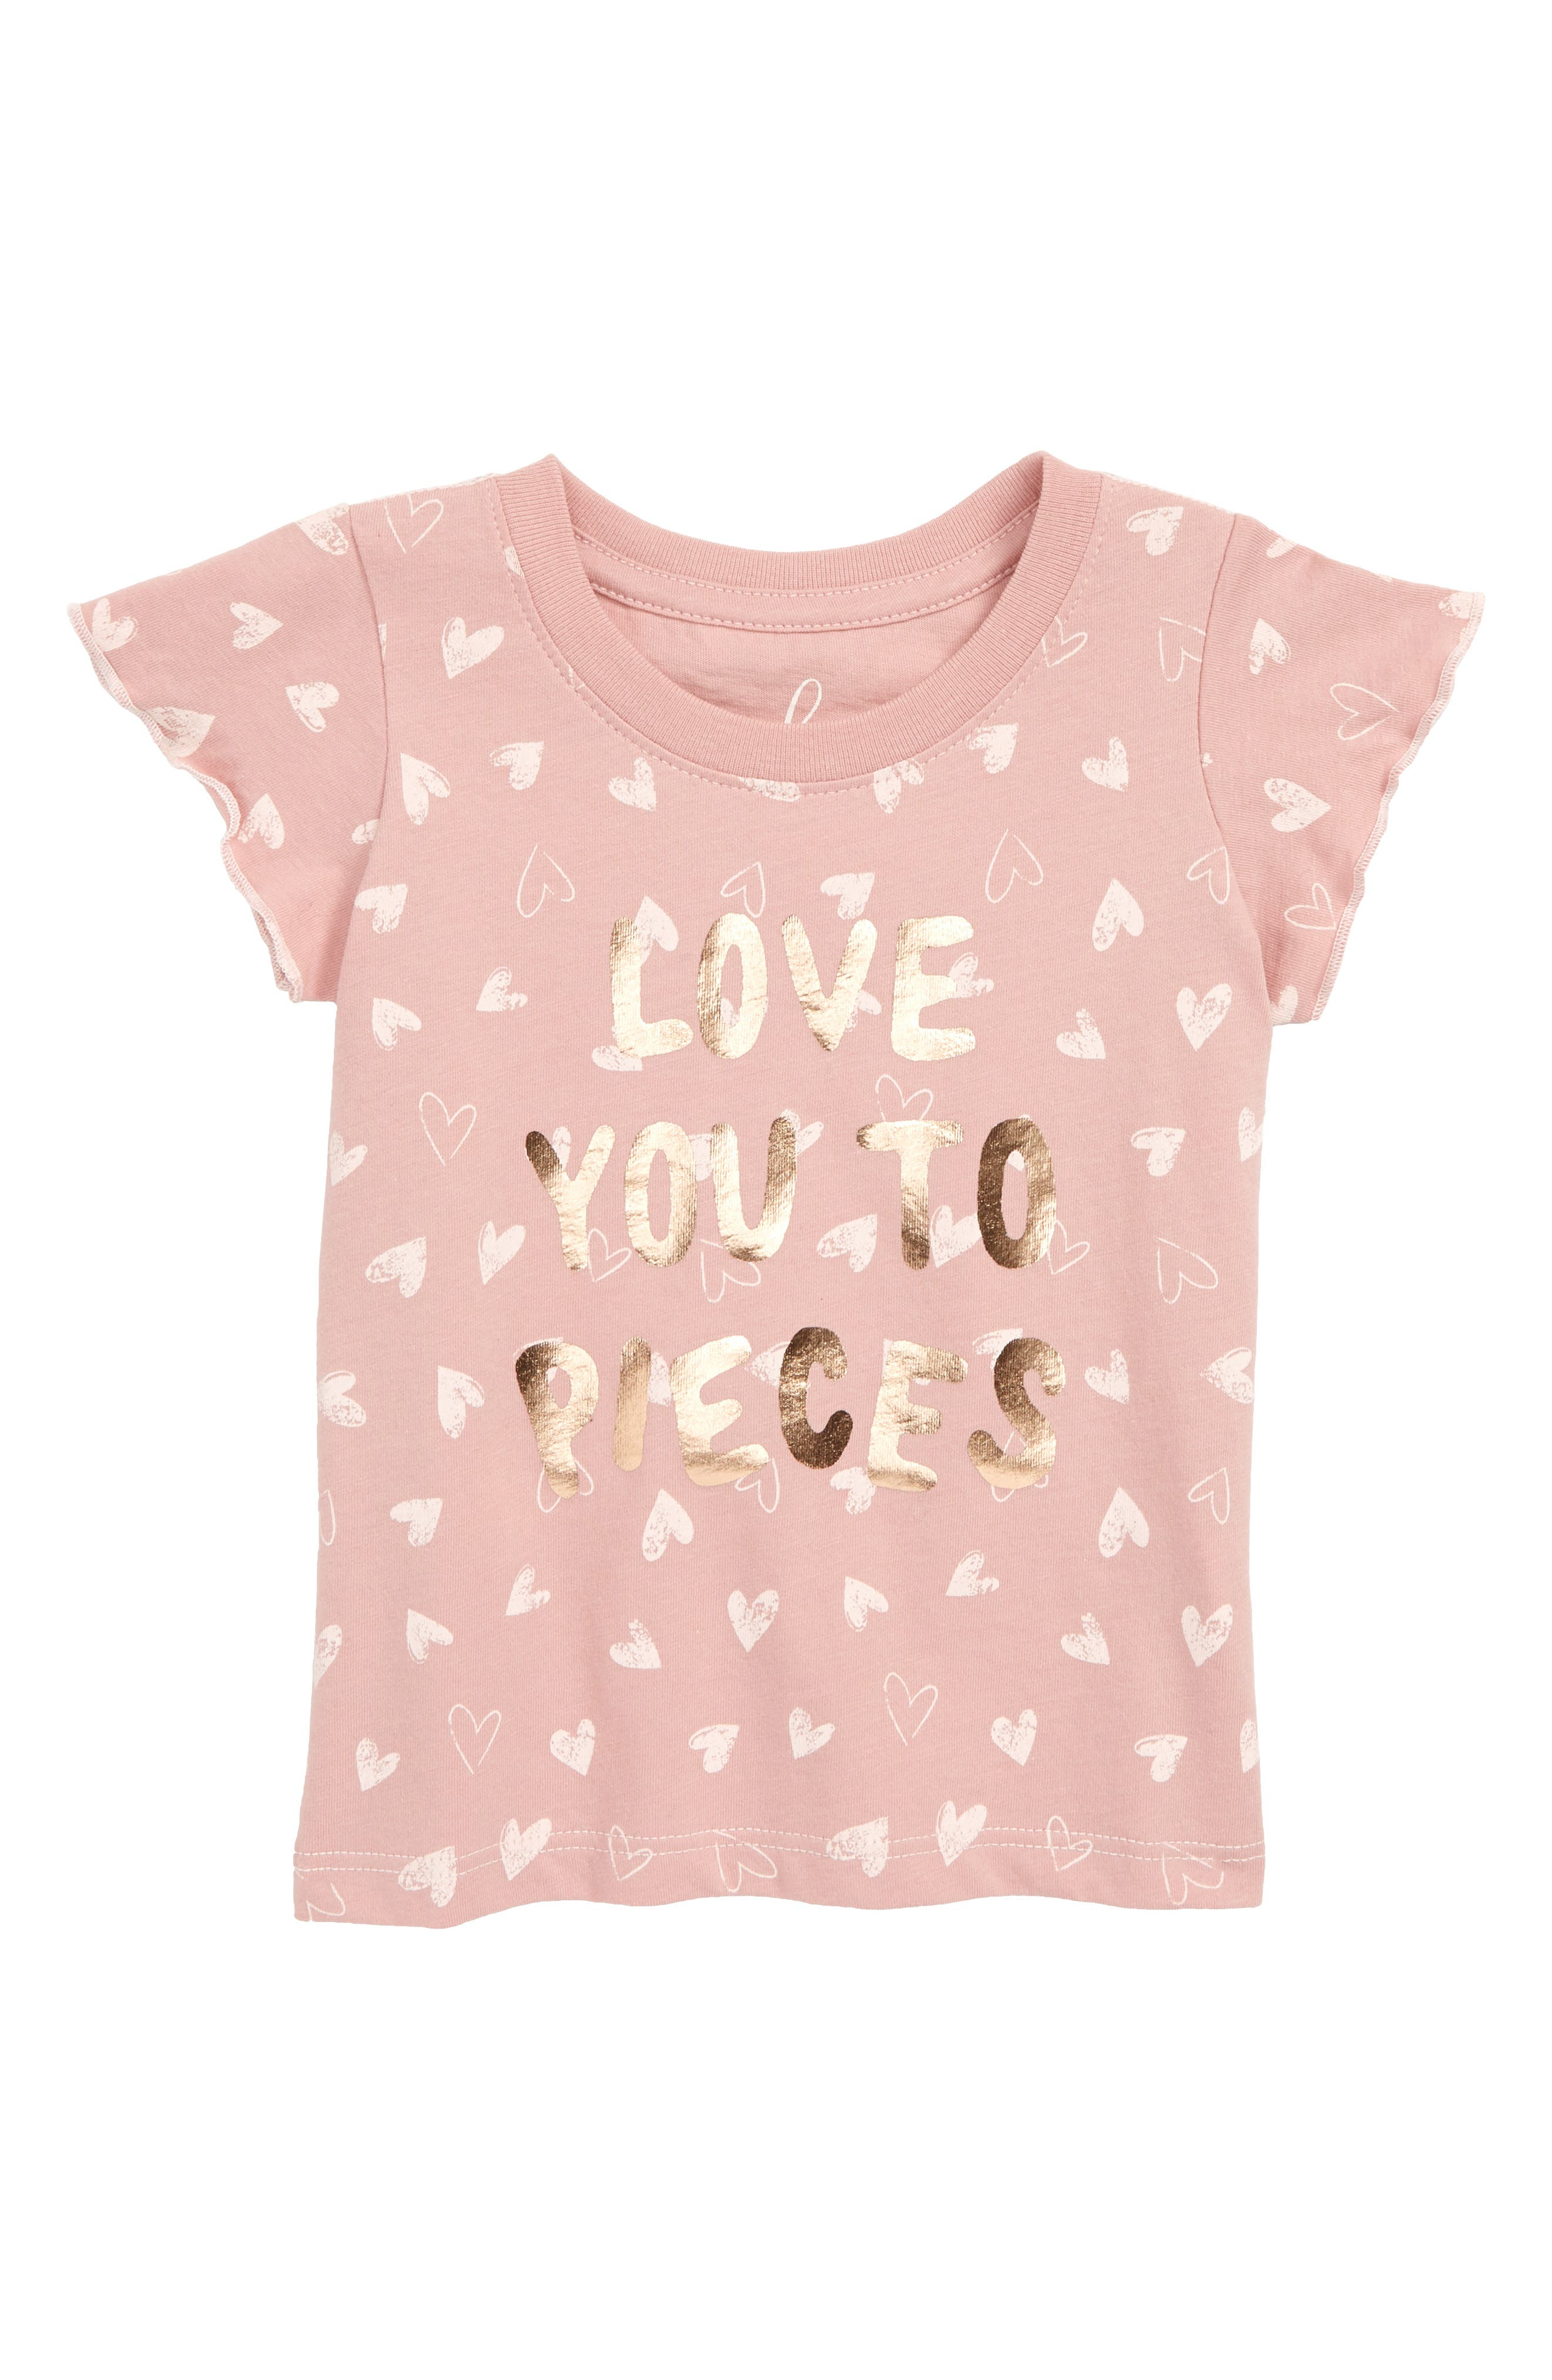 PEEK ESSENTIALS, Peek Love You to Pieces Graphic T-Shirt, Main thumbnail 1, color, PINK